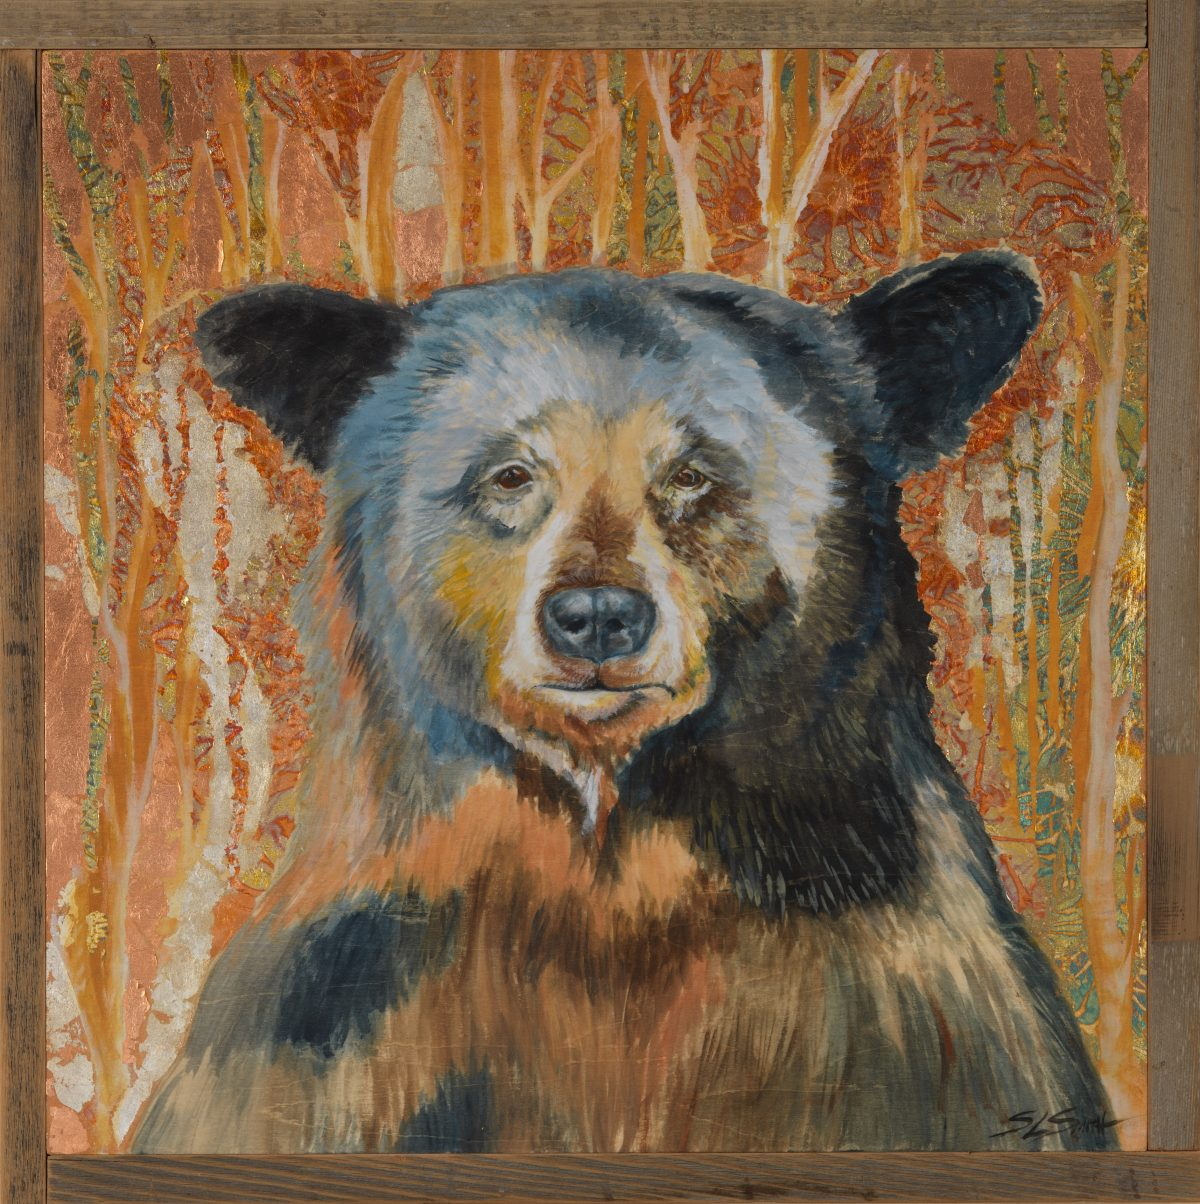 In a Gilded Wood - Truckee and Lake Tahoe fine artist wildlife painter nature painting bear